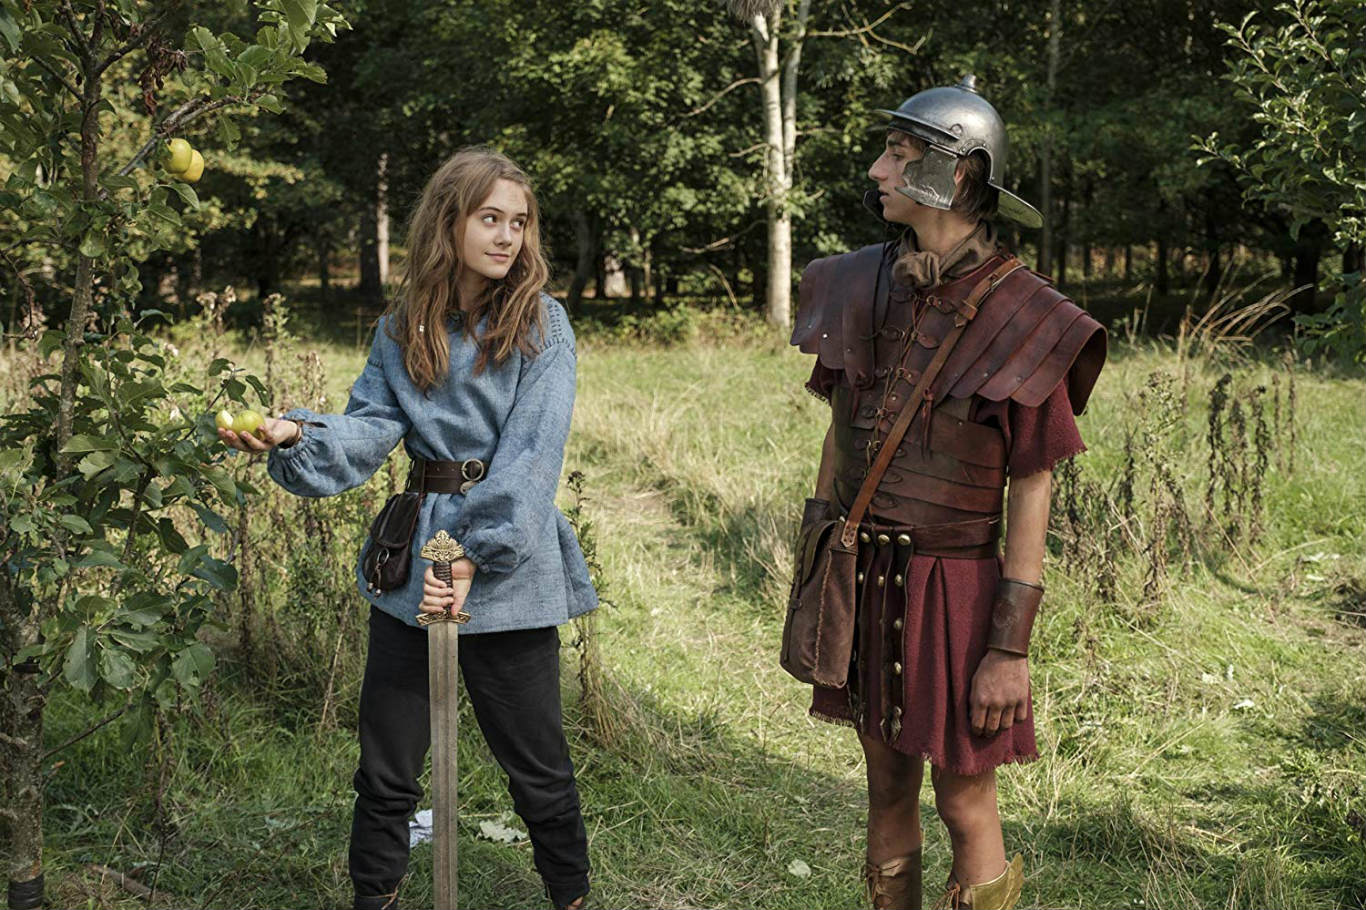 Horrible Histories: The Movie – Rotten Romans - A Relaxing, Funny And Enjoyable Family Film - OC Movie Reviews